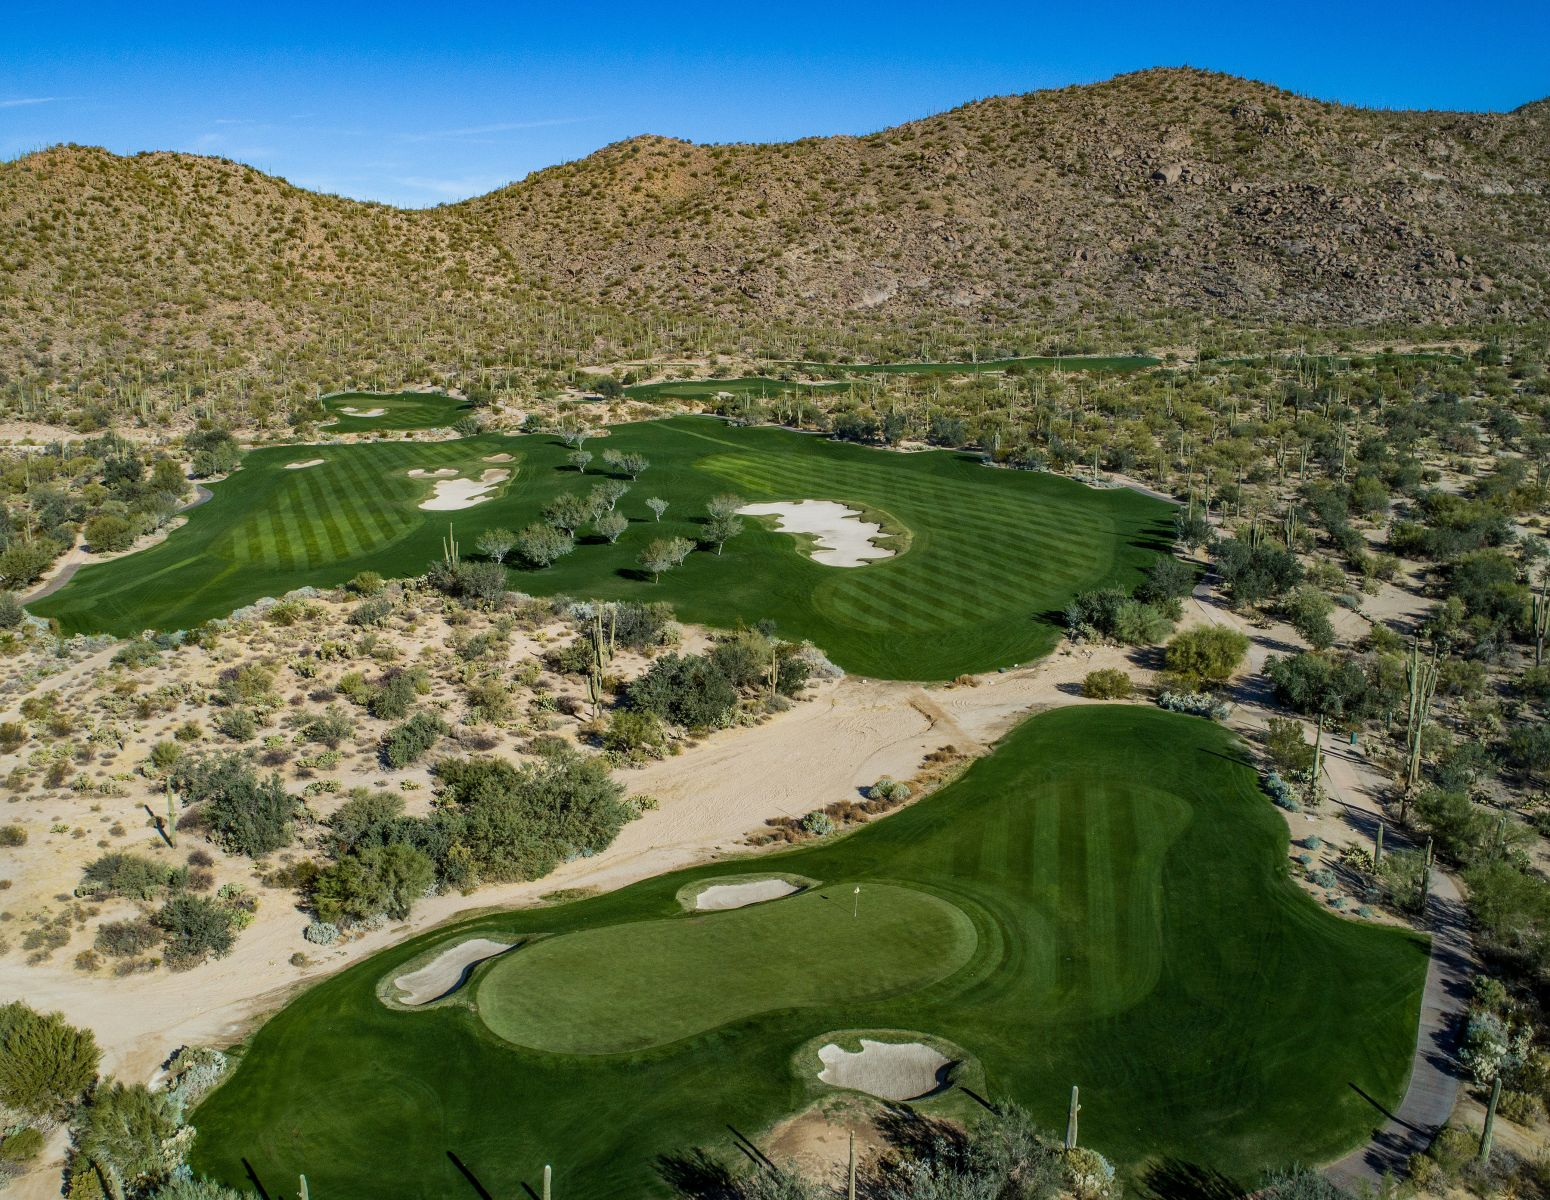 Aerial view of hole 8 on the Tortolita course